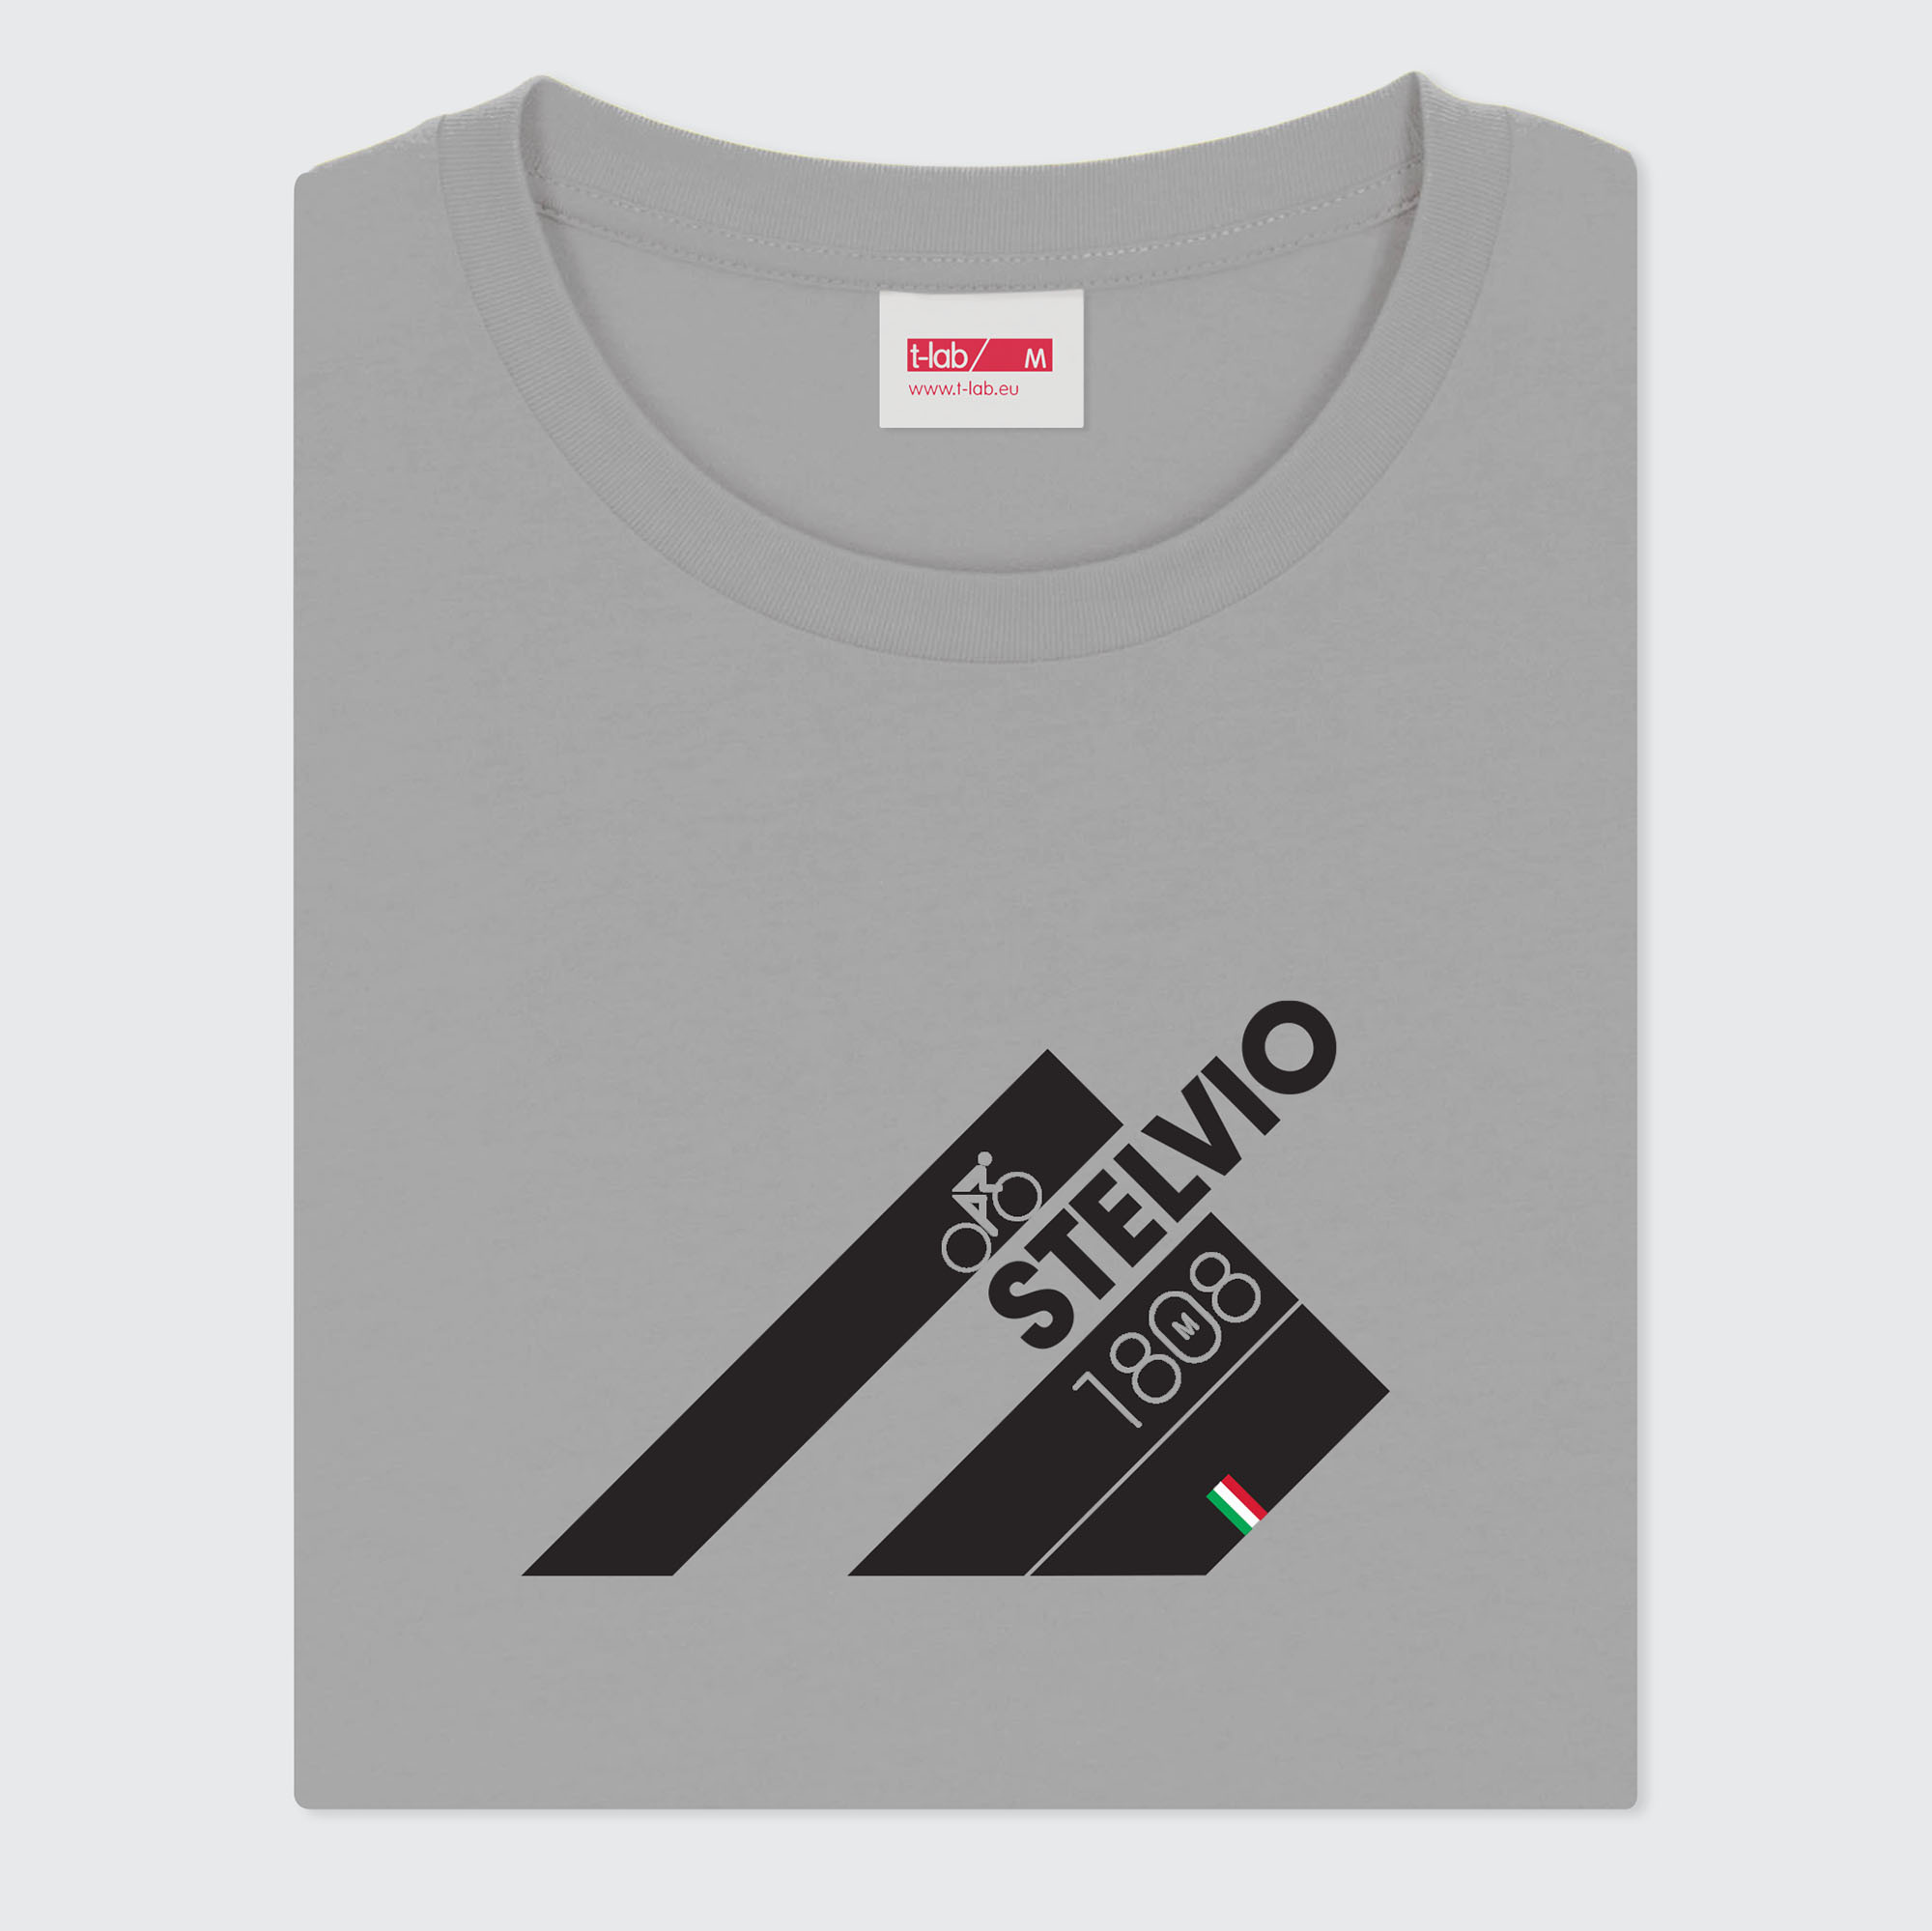 T-lab-Stelvio-mens-cycling-t-shirt